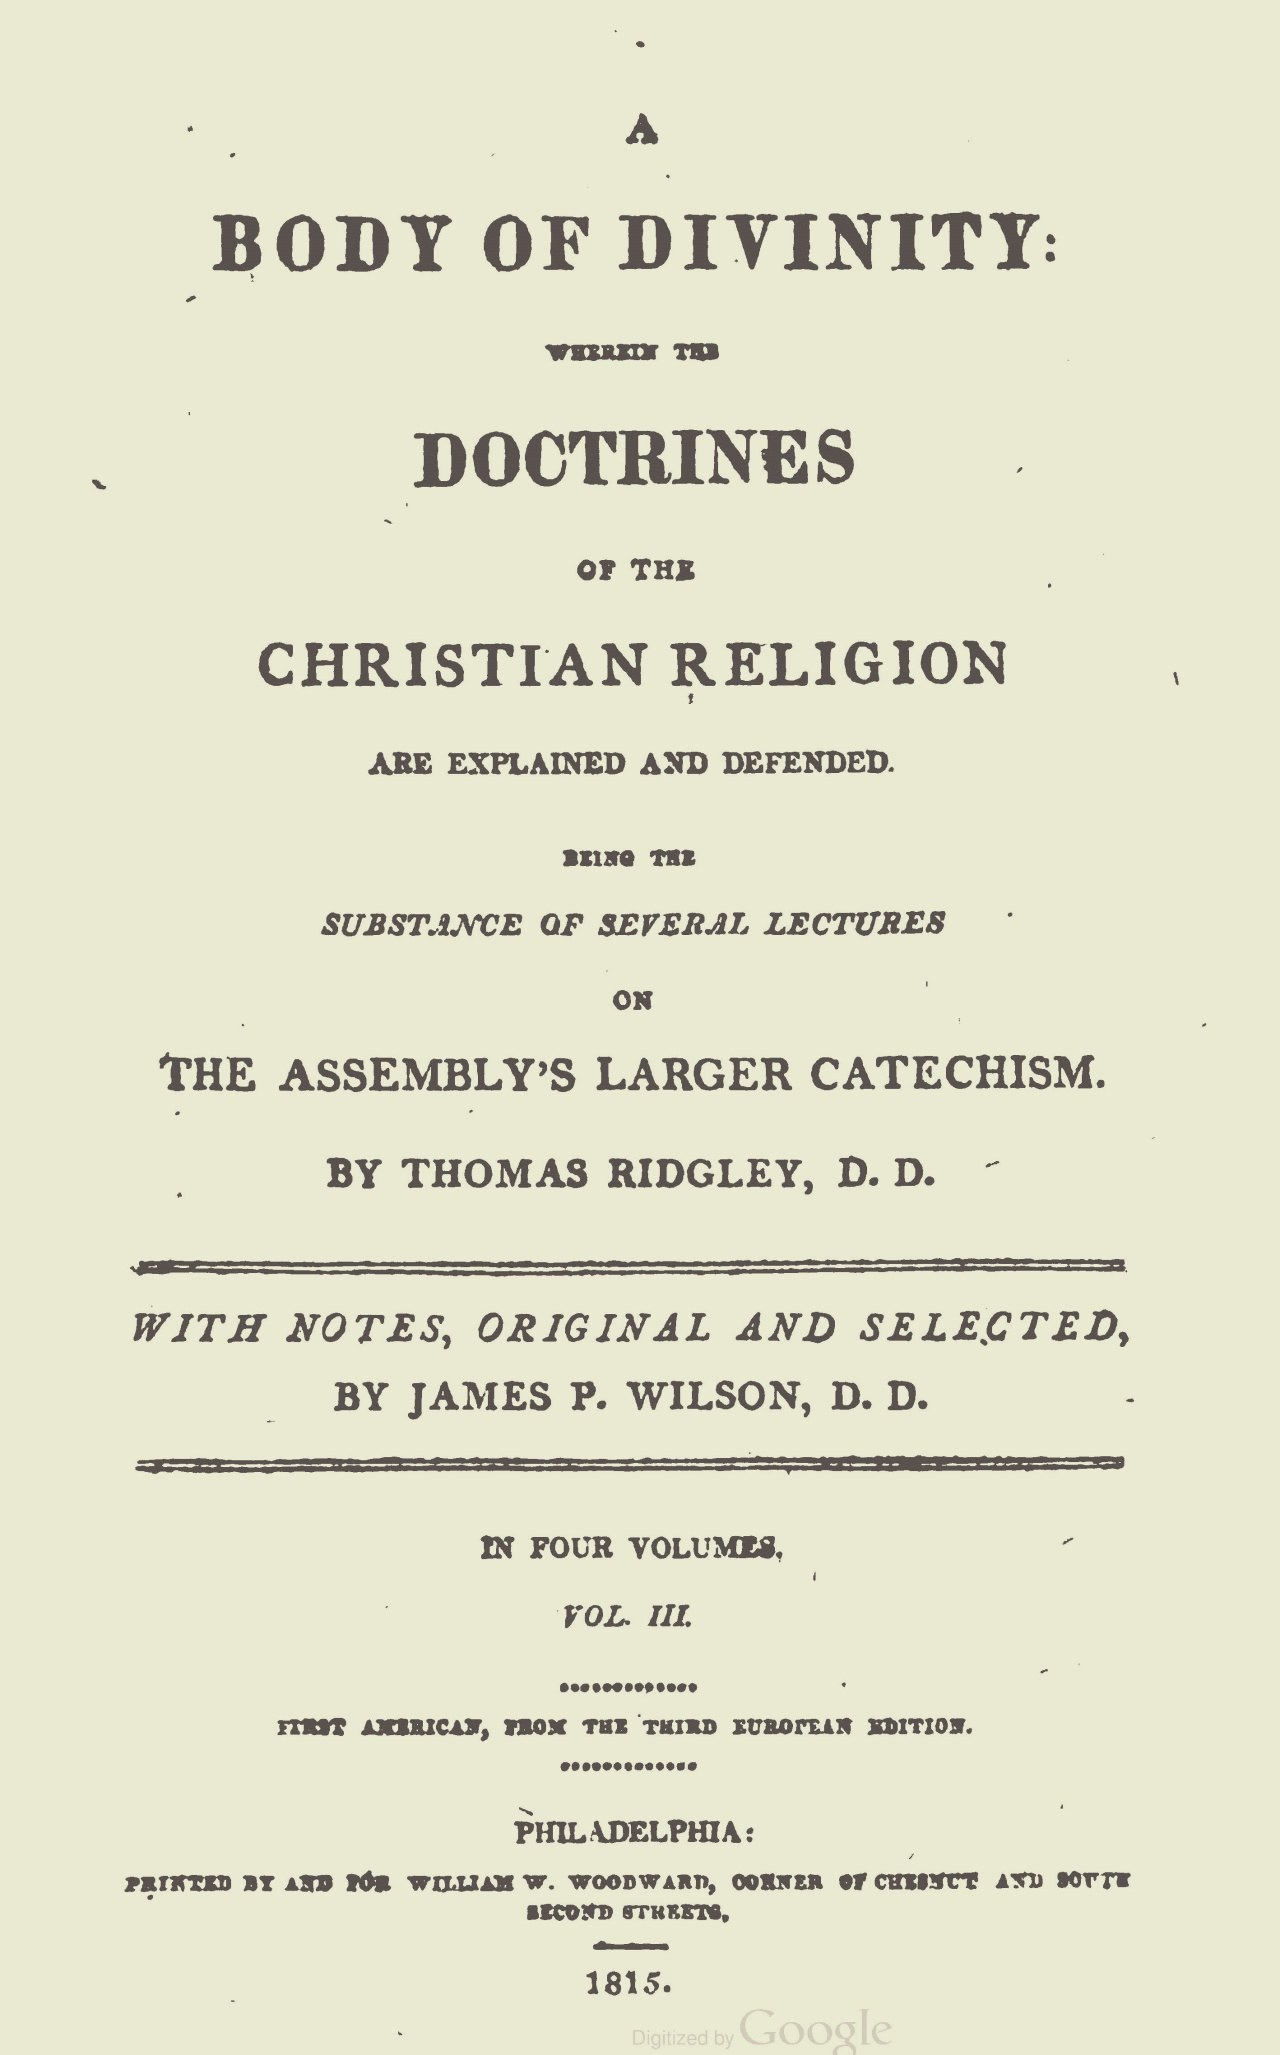 Wilson, Sr., James Patriot, Notes on Ridgley's Body of Divinity, Vol. 3 Title Page.jpg